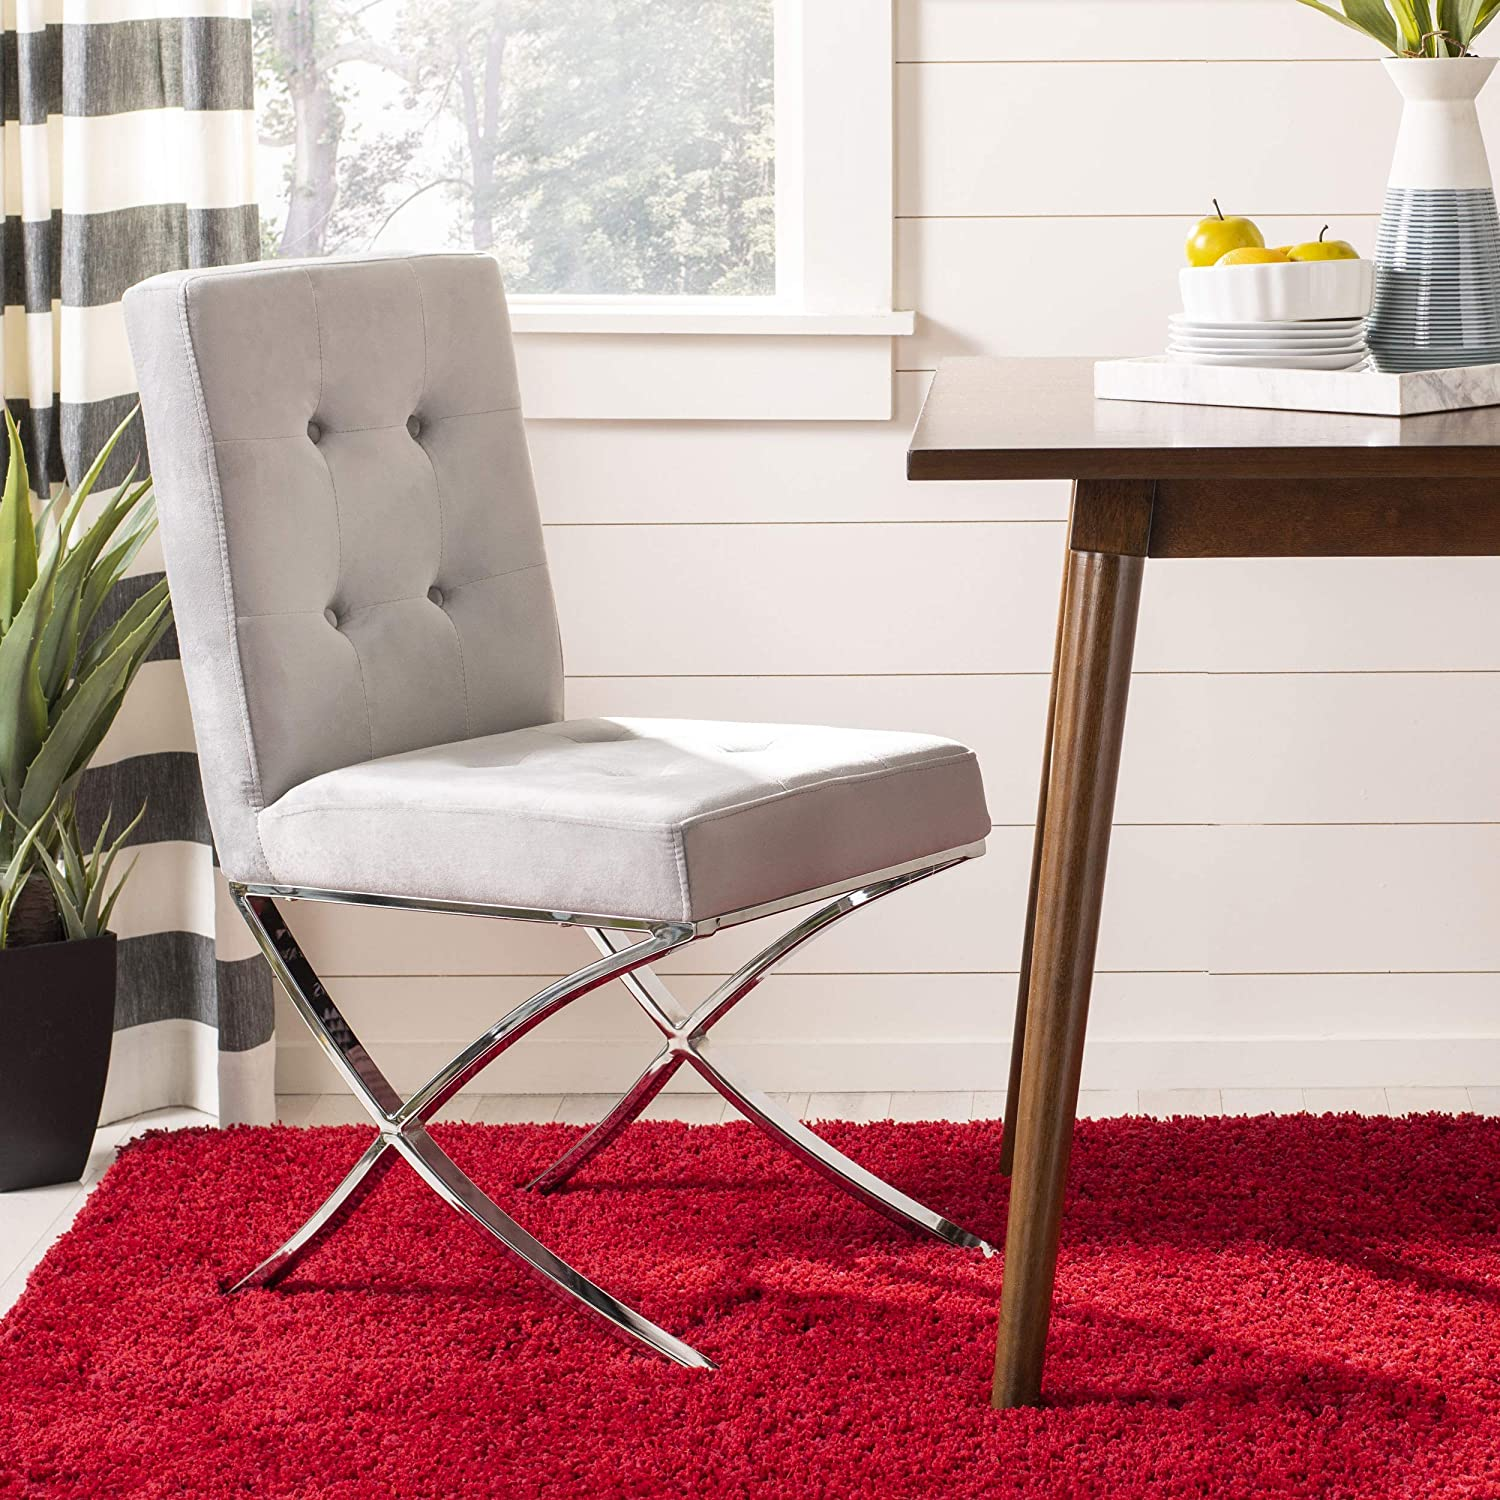 Safavieh Home Walsh White Faux Leather and Chrome Tufted Side Chair